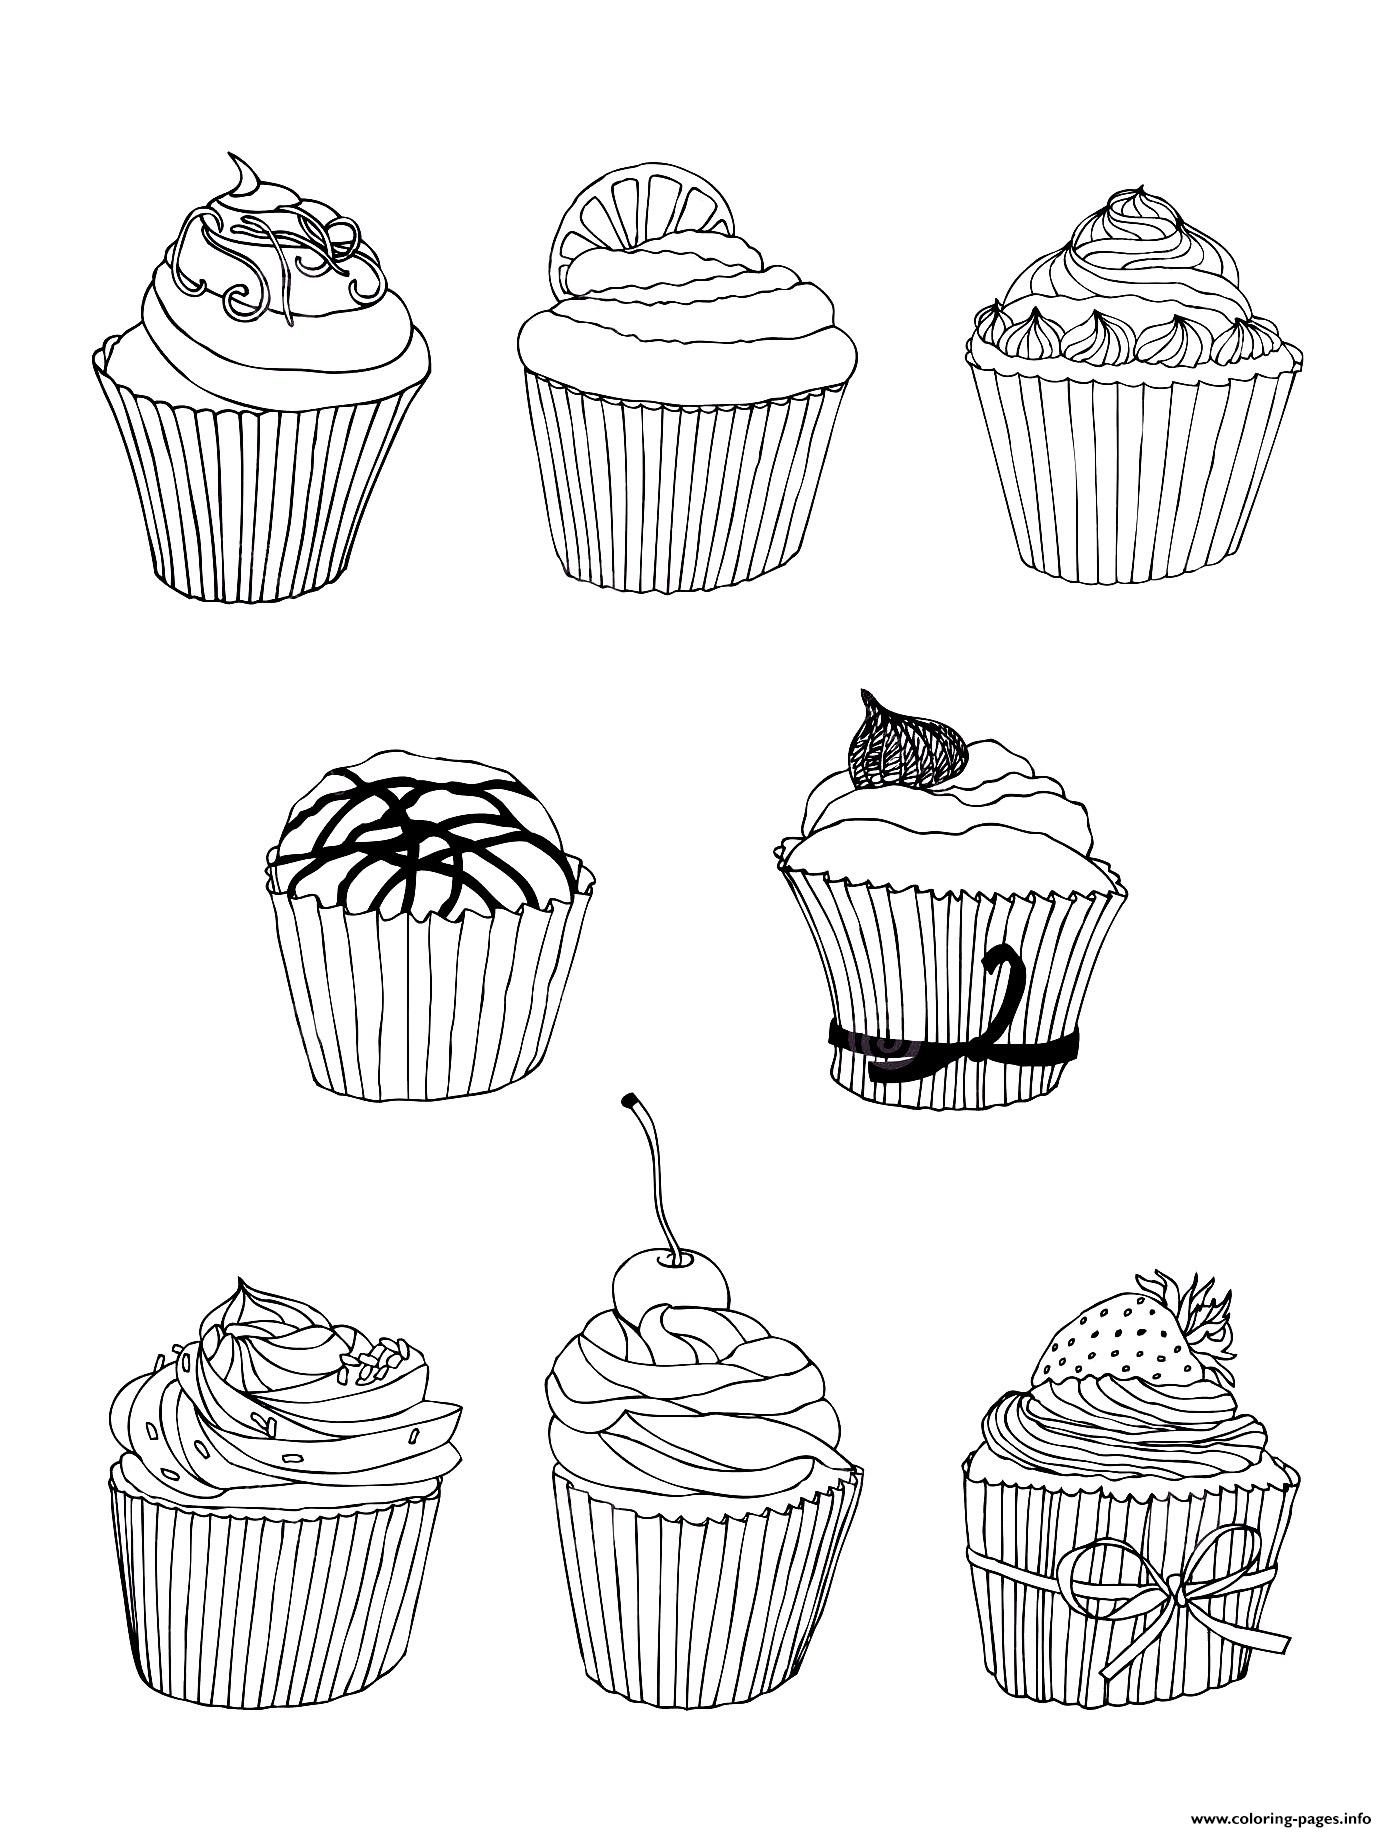 Free Cupcakes coloring pages